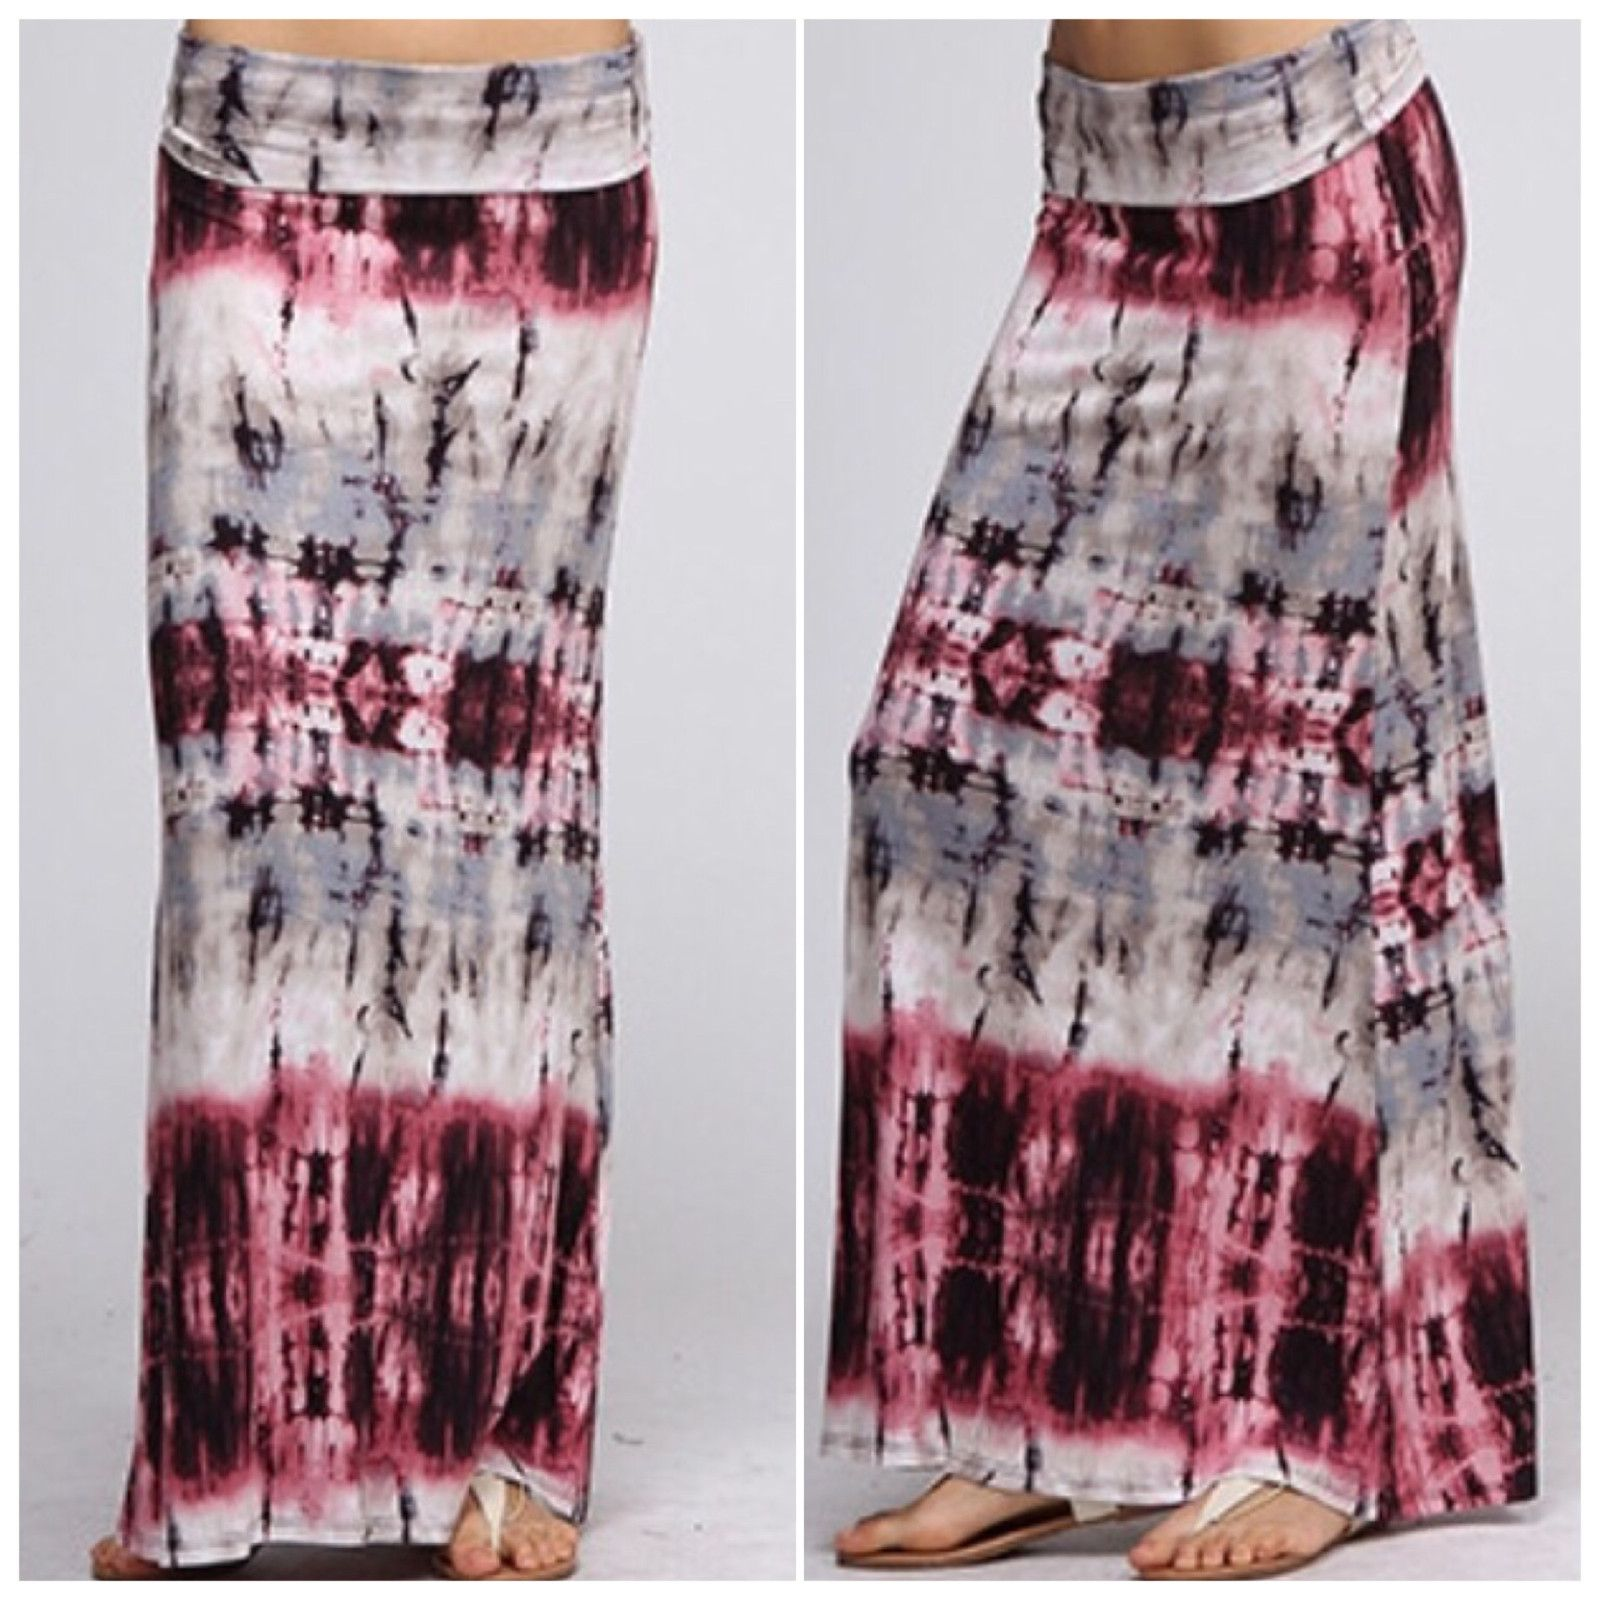 New arrival! If you loved our mono chrome maxi then you'll love the new purple tie dye maxi-skirt. Now available! http://pict.com/p/D3N